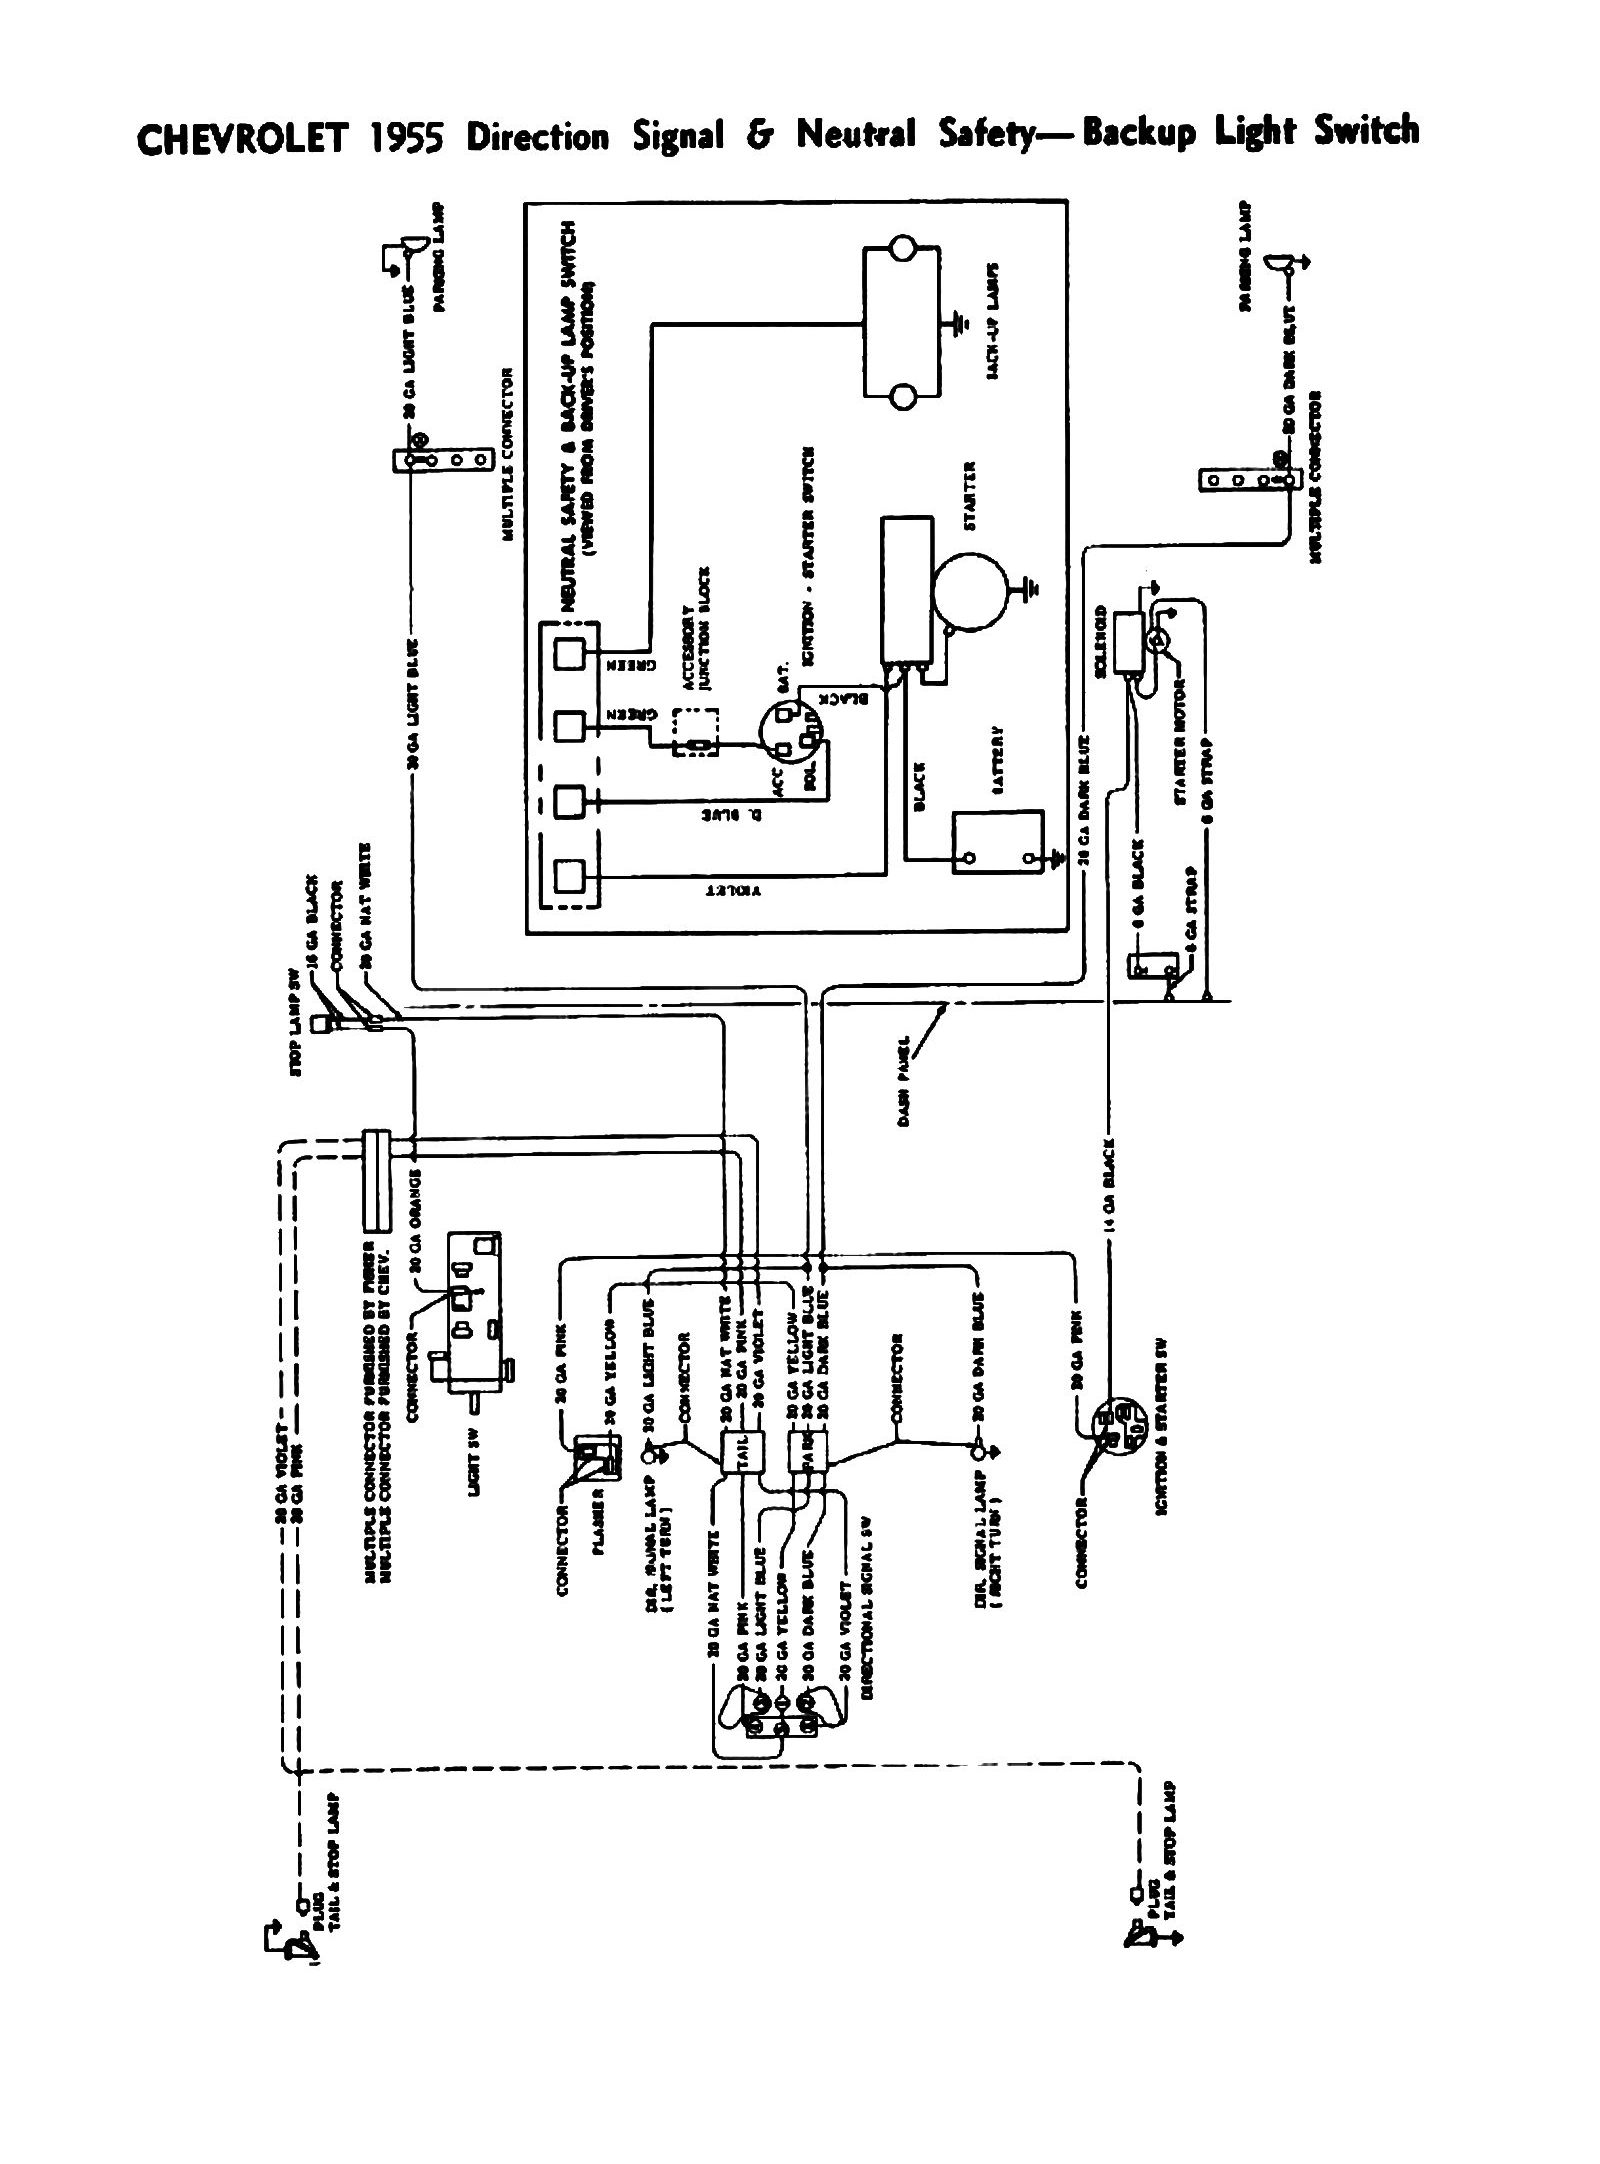 Hmmwv Wiring Diagram in addition Wiring Schematic For 1953 Oldsmobile besides Showthread furthermore Gthawkdelcosi likewise P 0900c15280055cf5. on studebaker wiring diagrams